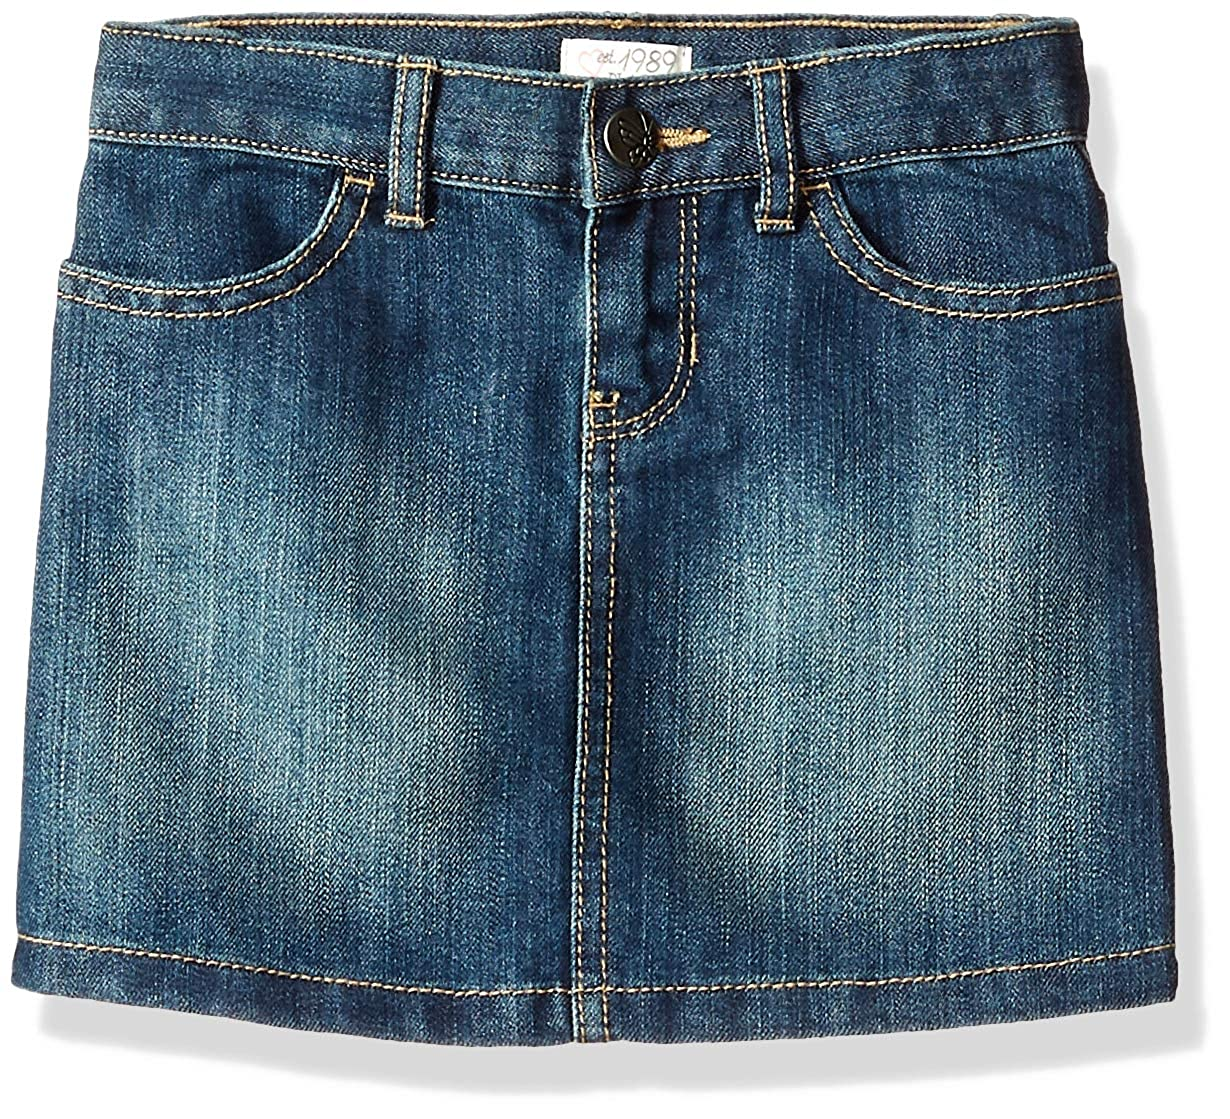 The Children's Place Big Girls' Denim Skirt The Children's Place 2002555